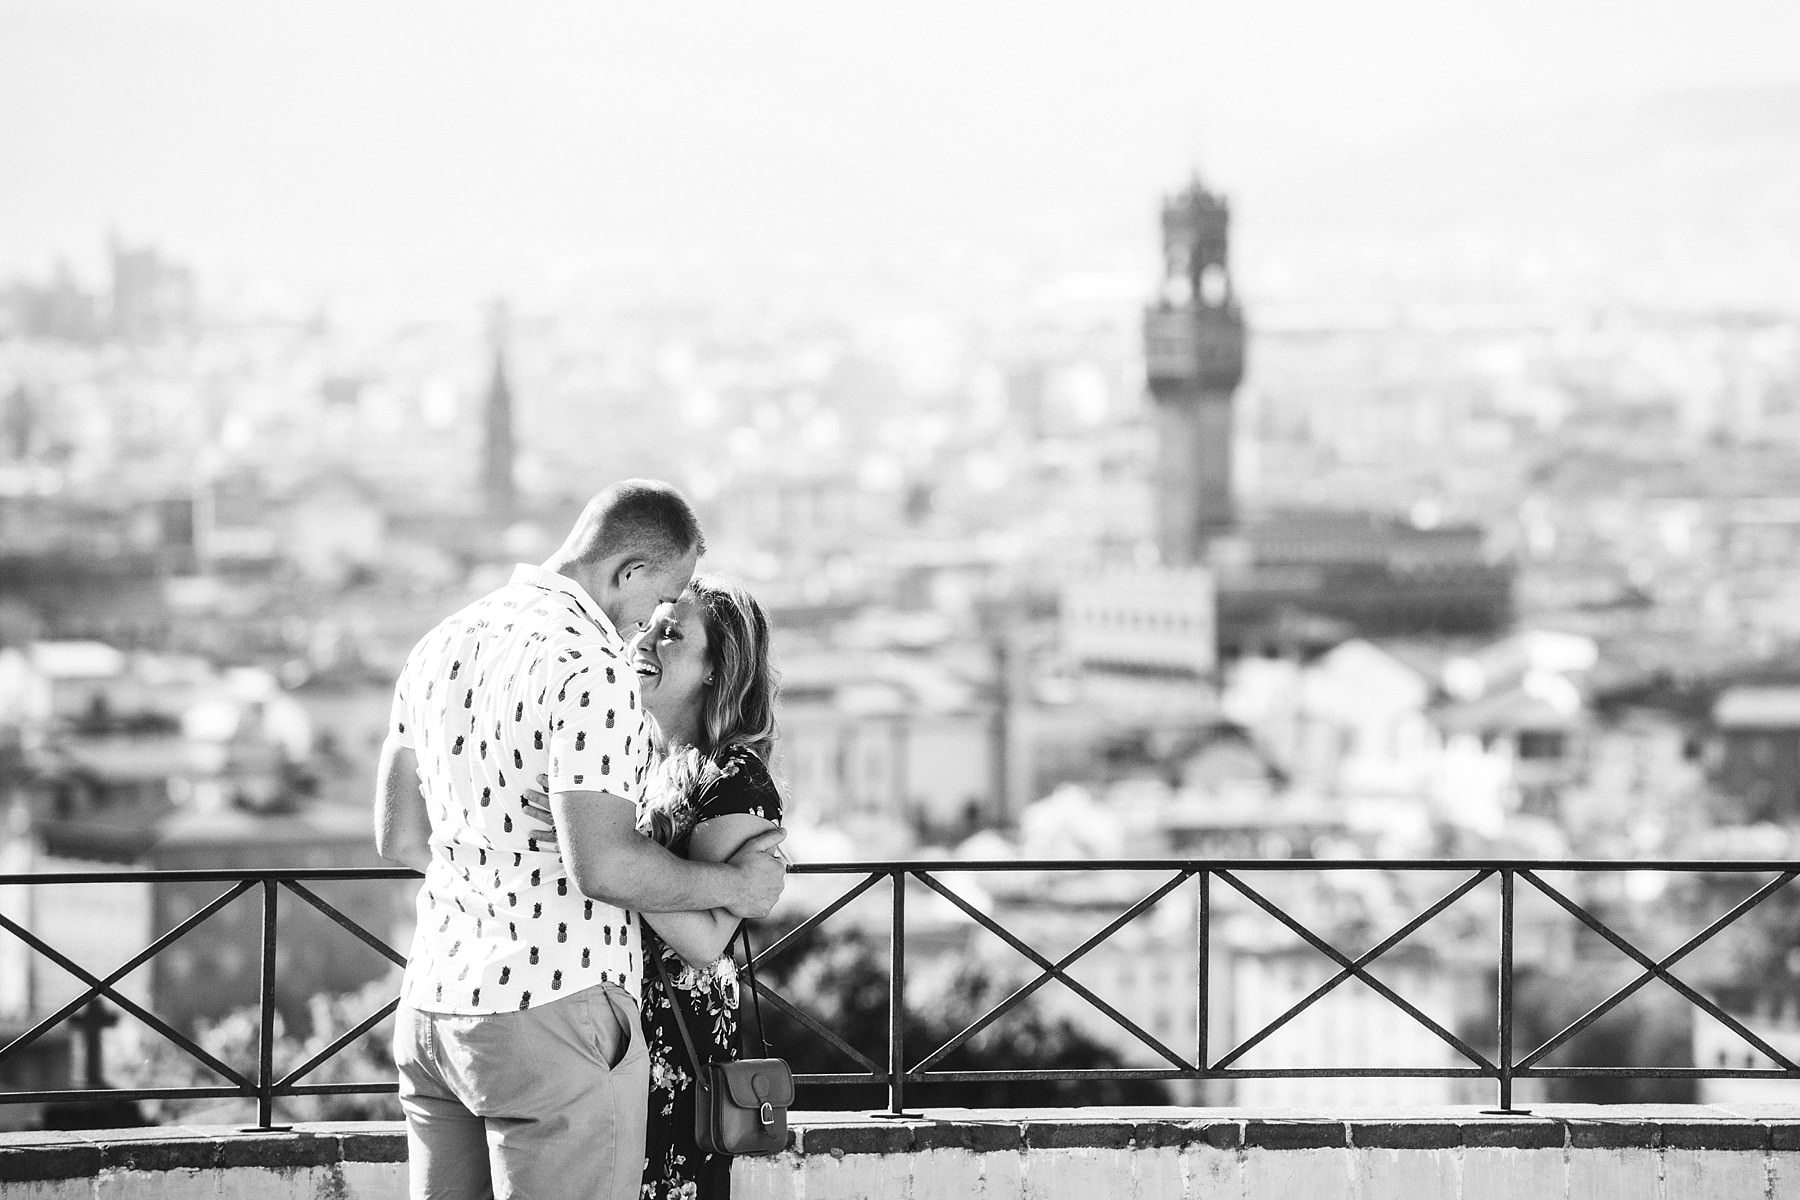 Surprise proposal photo shoot in Florence at San Miniato the most beautiful panoramic place in the city. Audio video recording of the proposal is available as optional